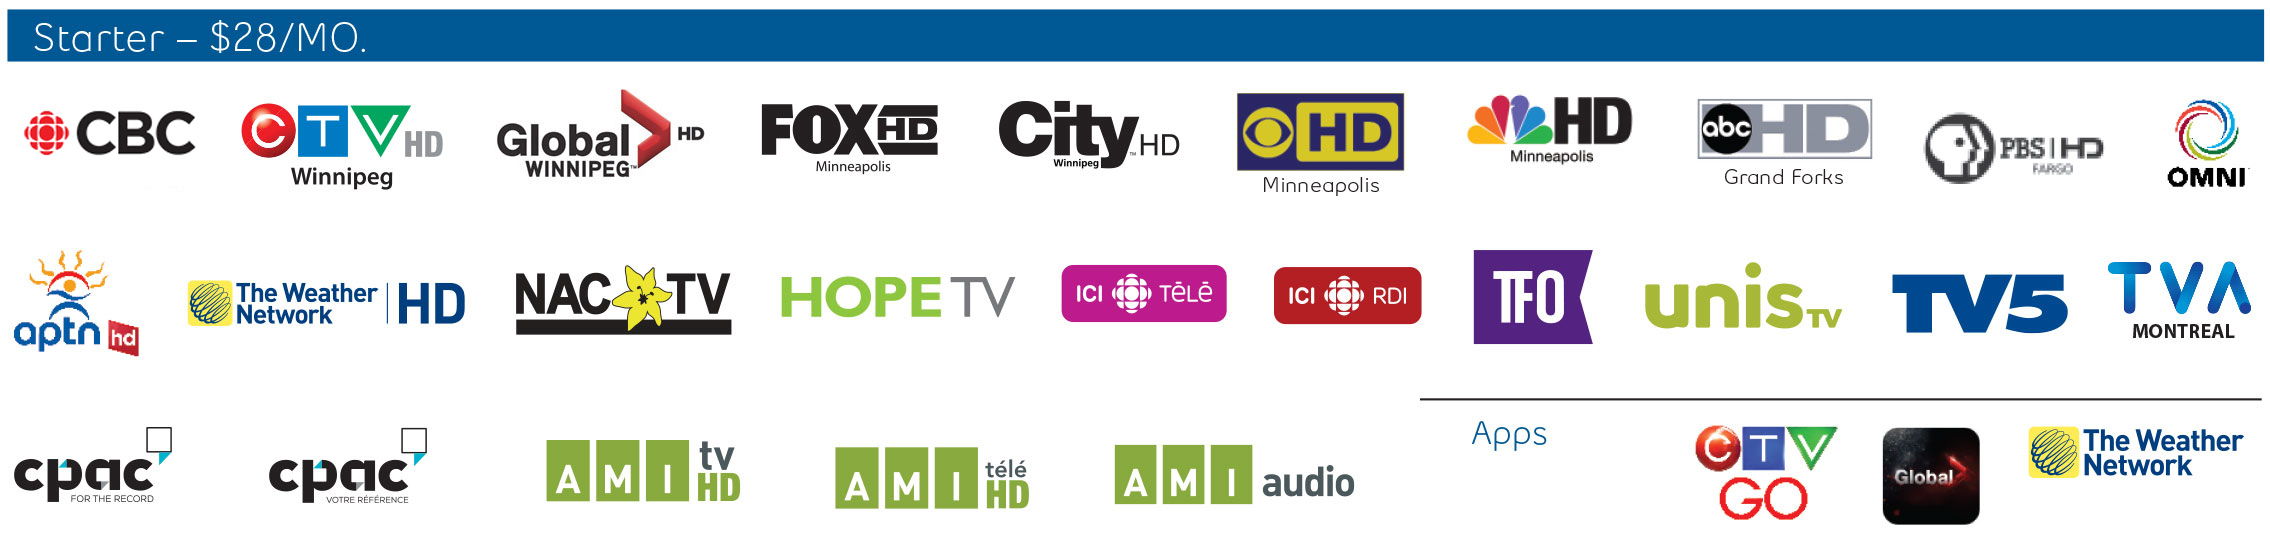 Channels found in Fibe TV Starter